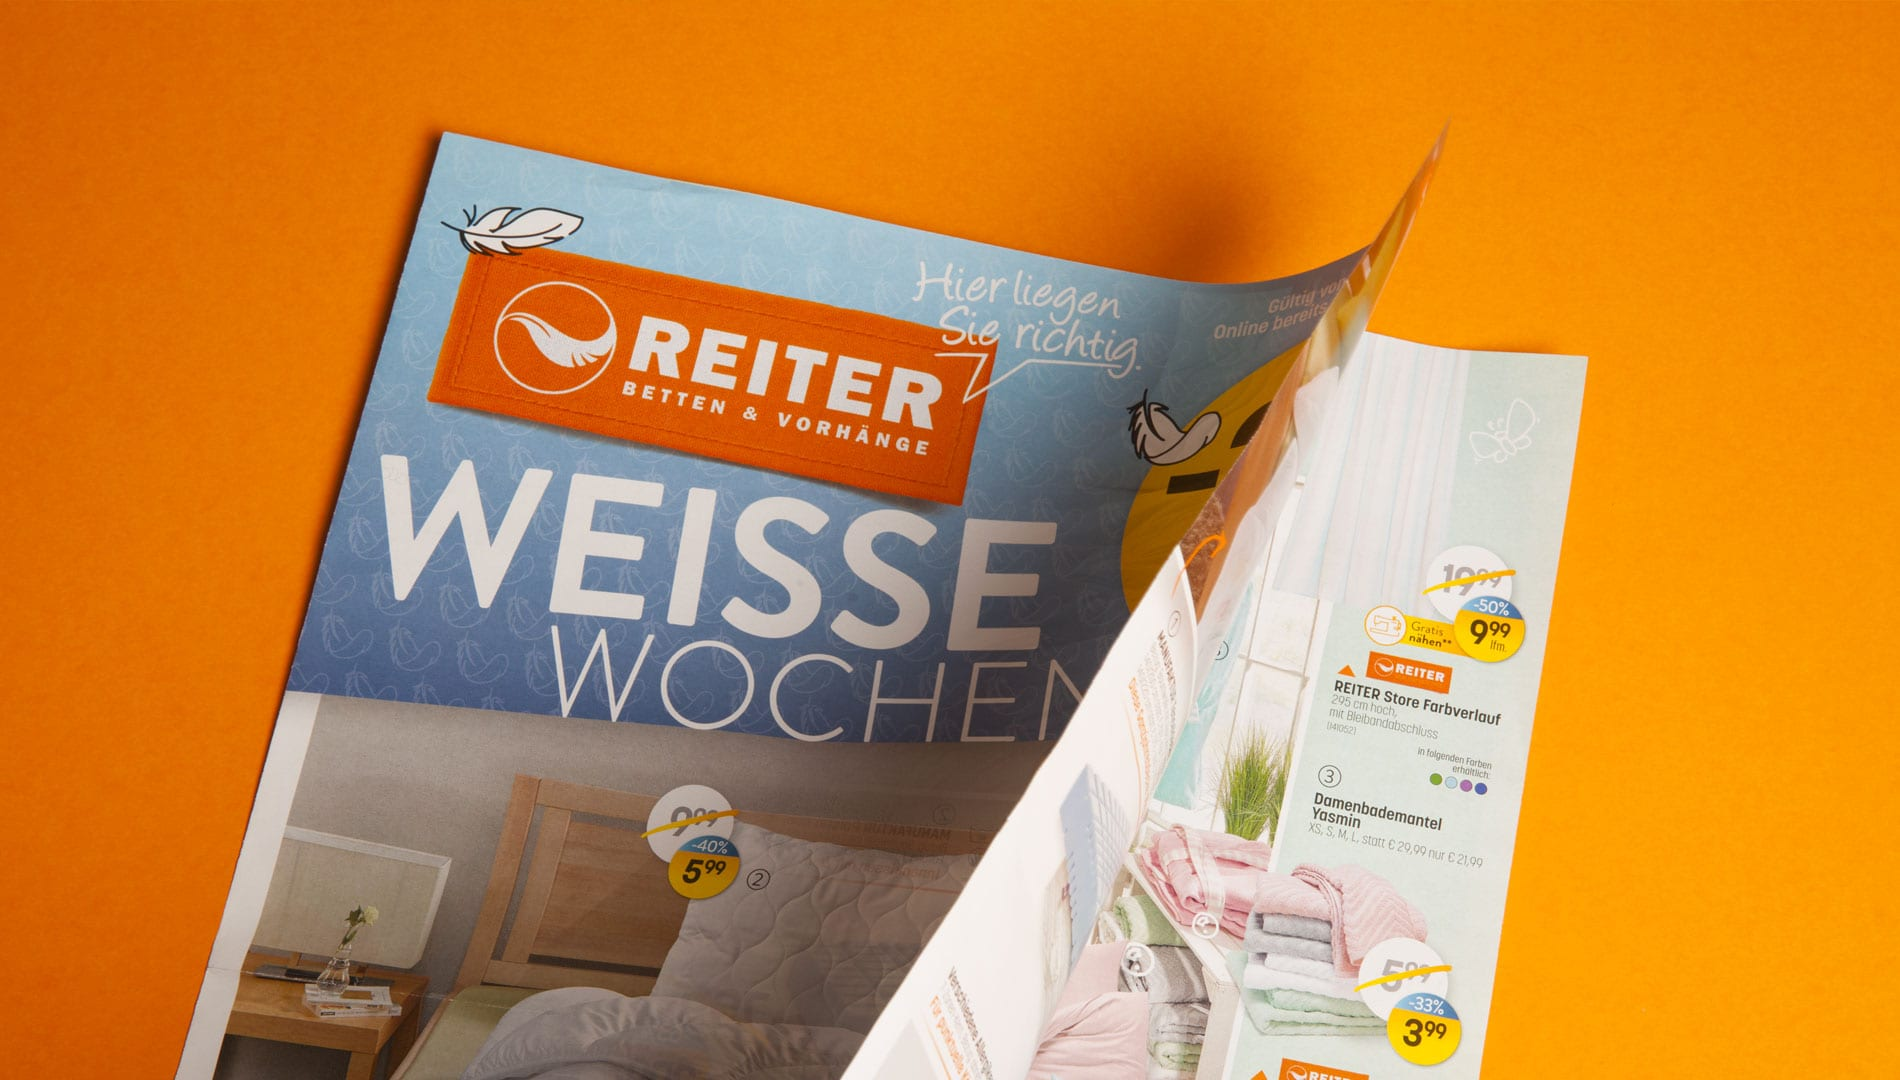 reiter-djw_bild_quer_resources2